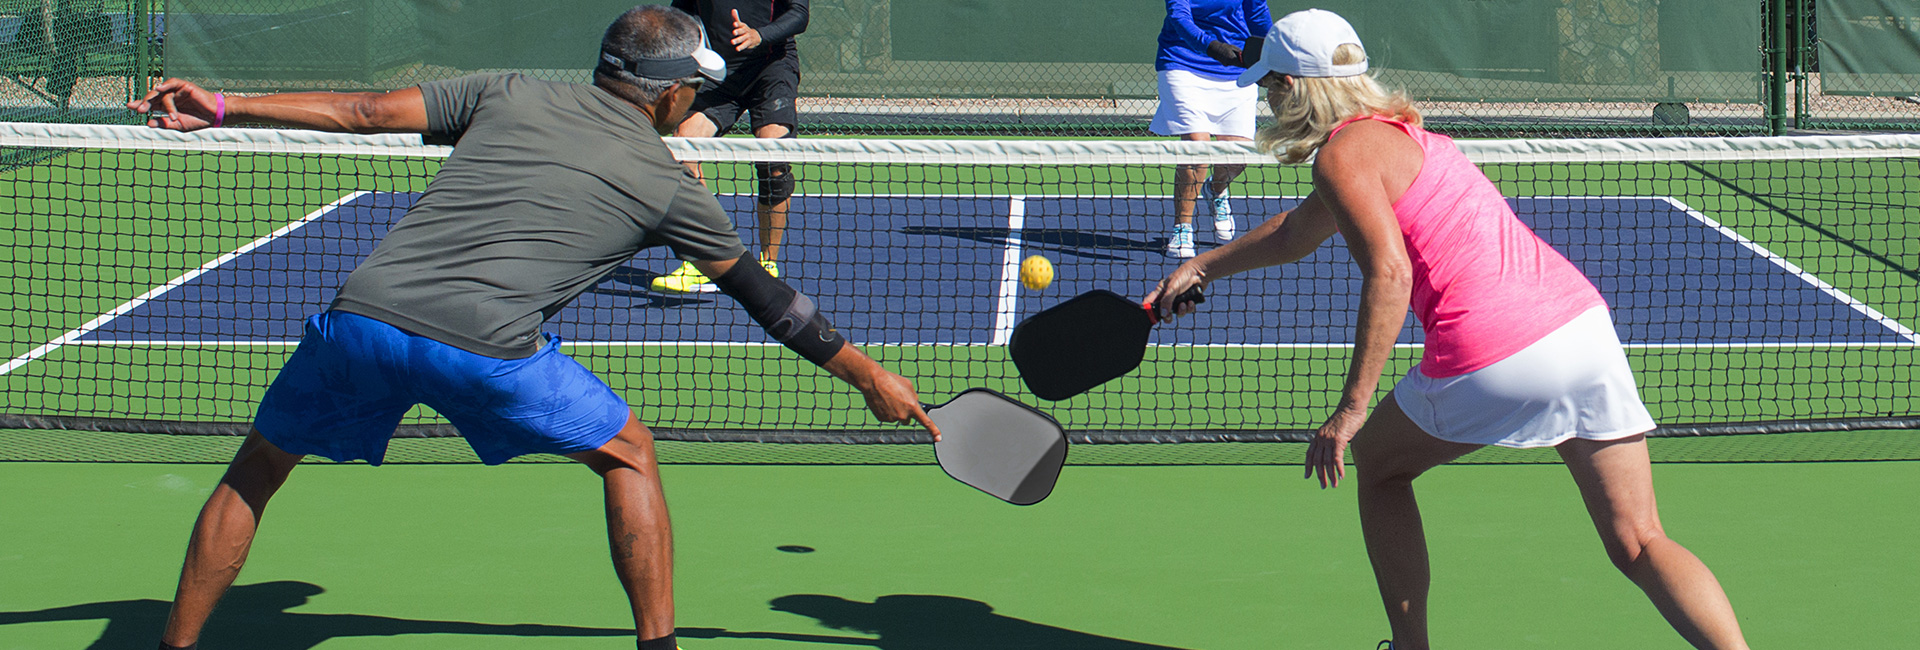 Pickleball-Injuries---Physical-Therapy